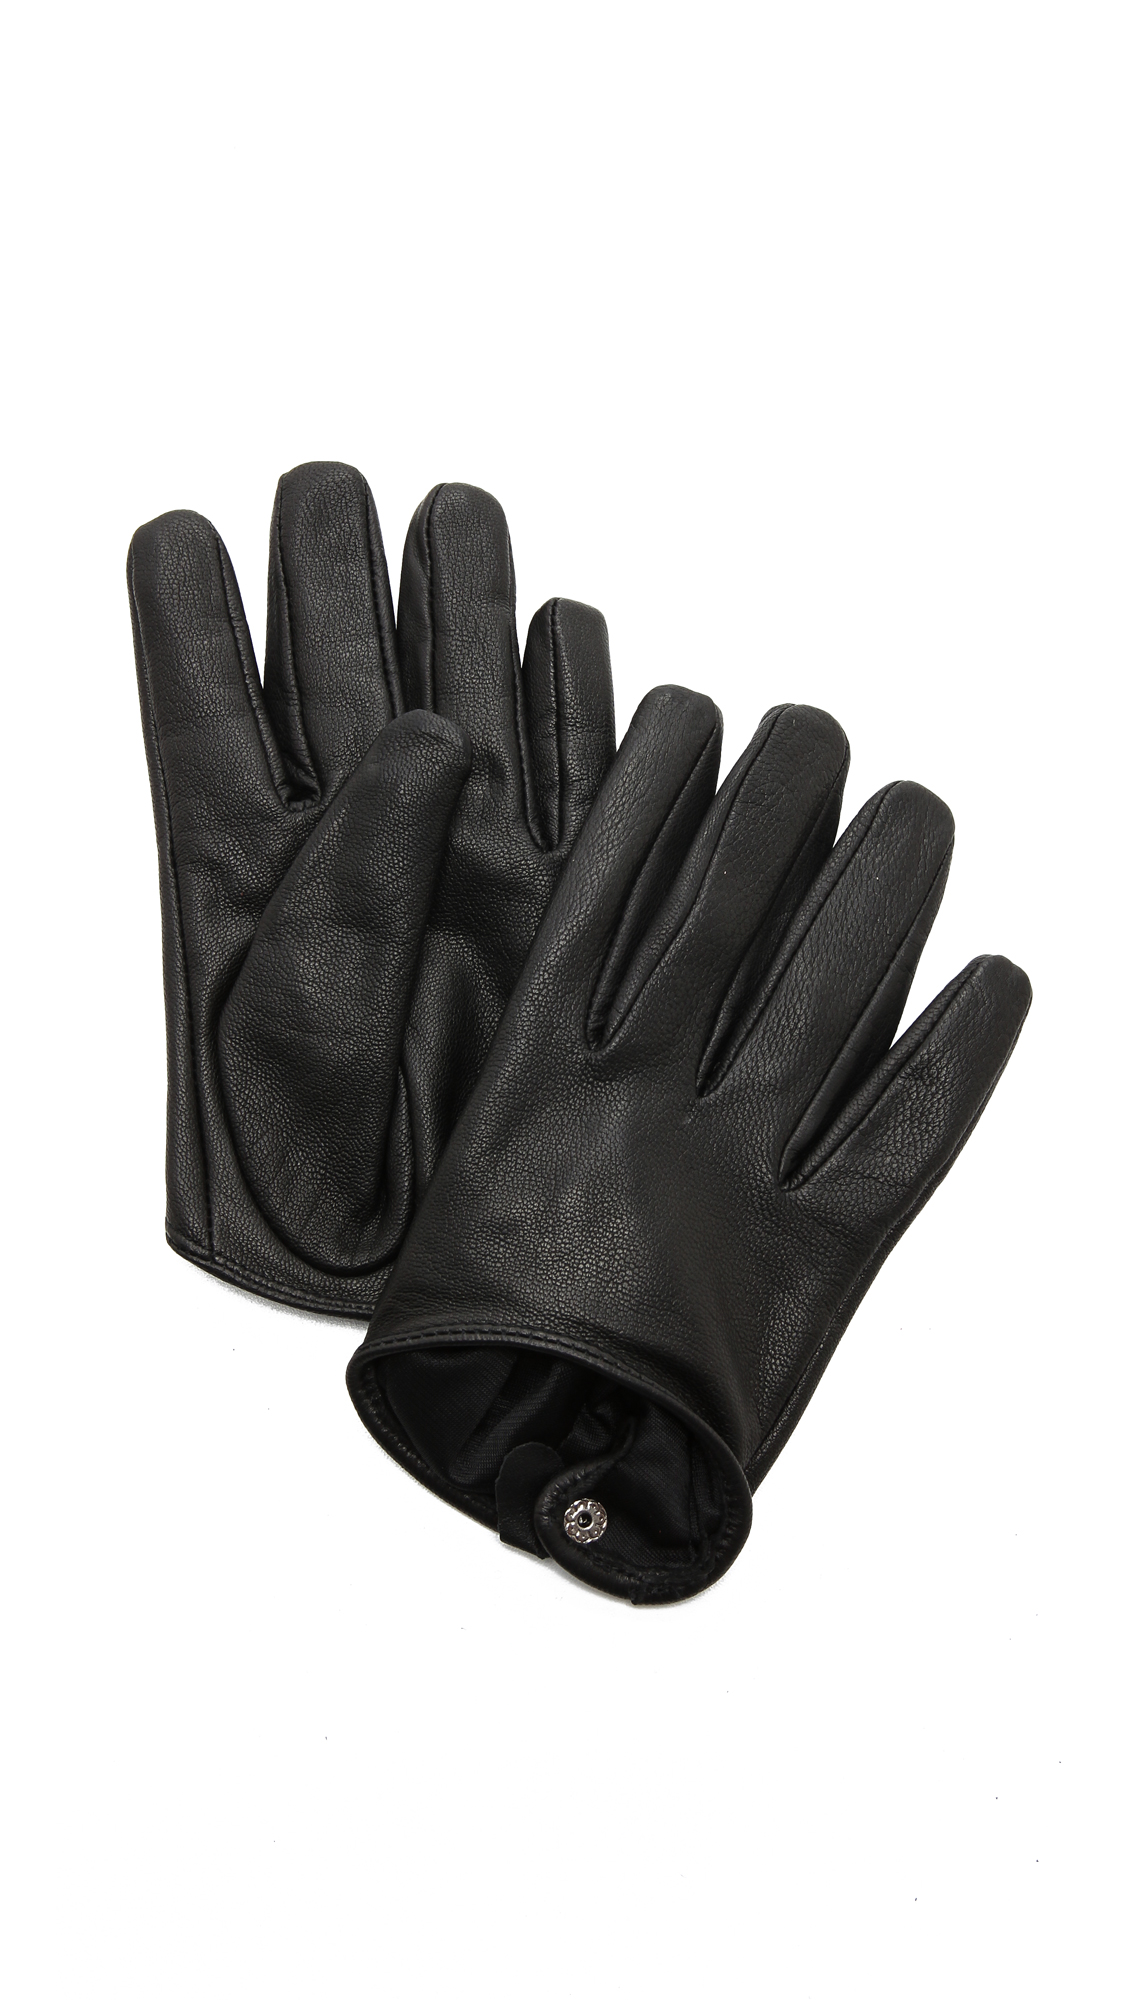 Ladies leather gloves designer - Carolina Amato Short Leather Gloves